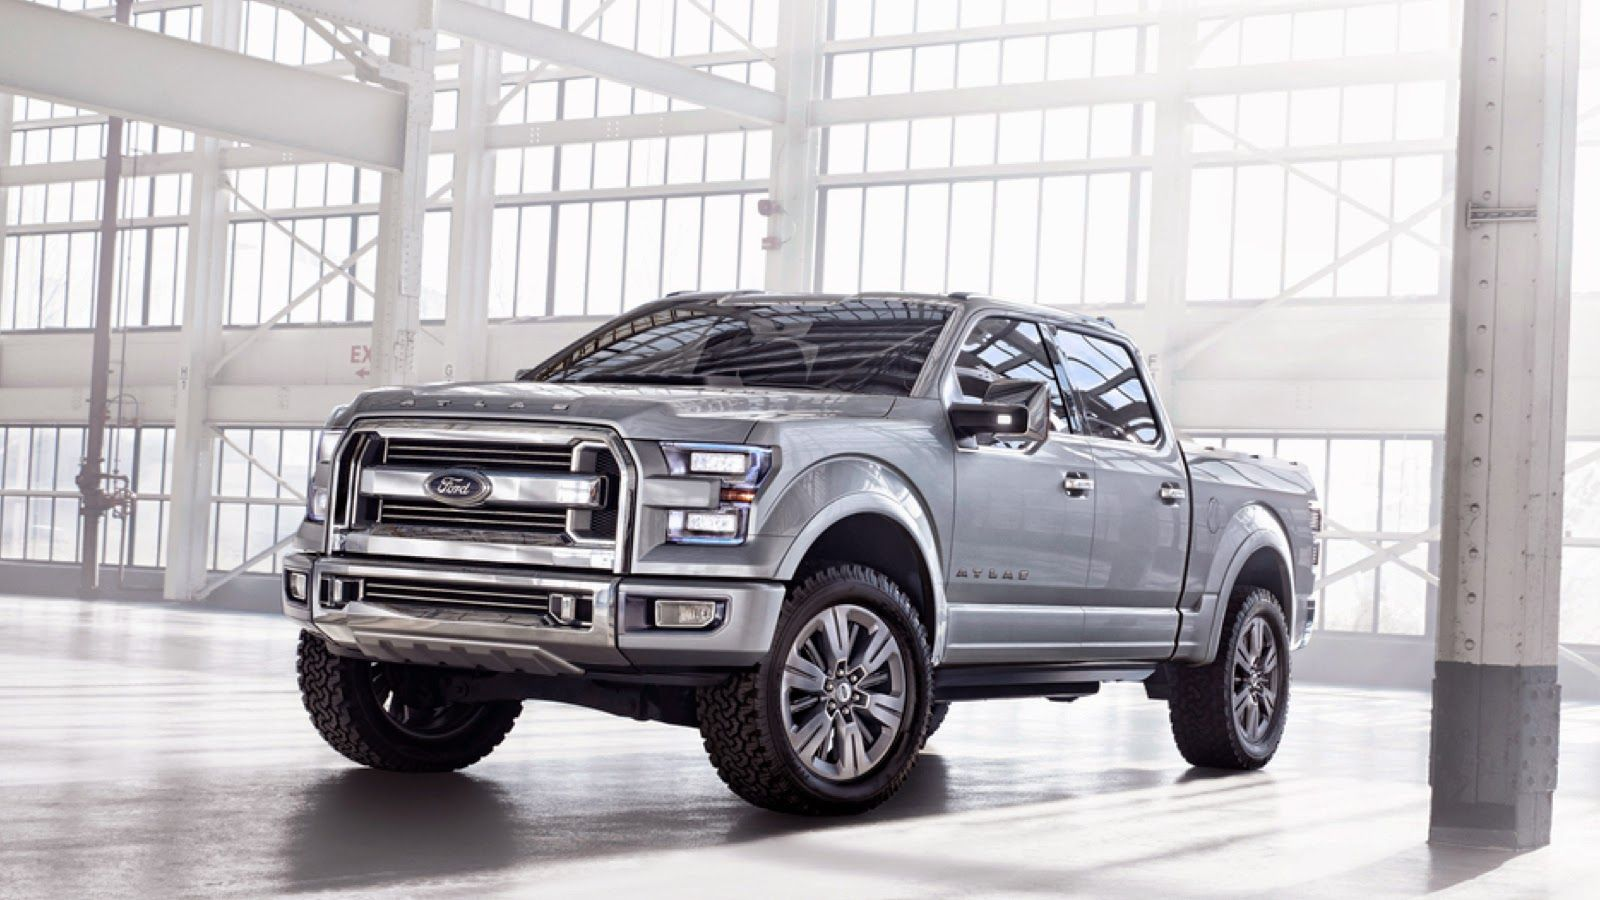 2019 Ford F150 Price Ford f150, 2019 ford, Ford trucks